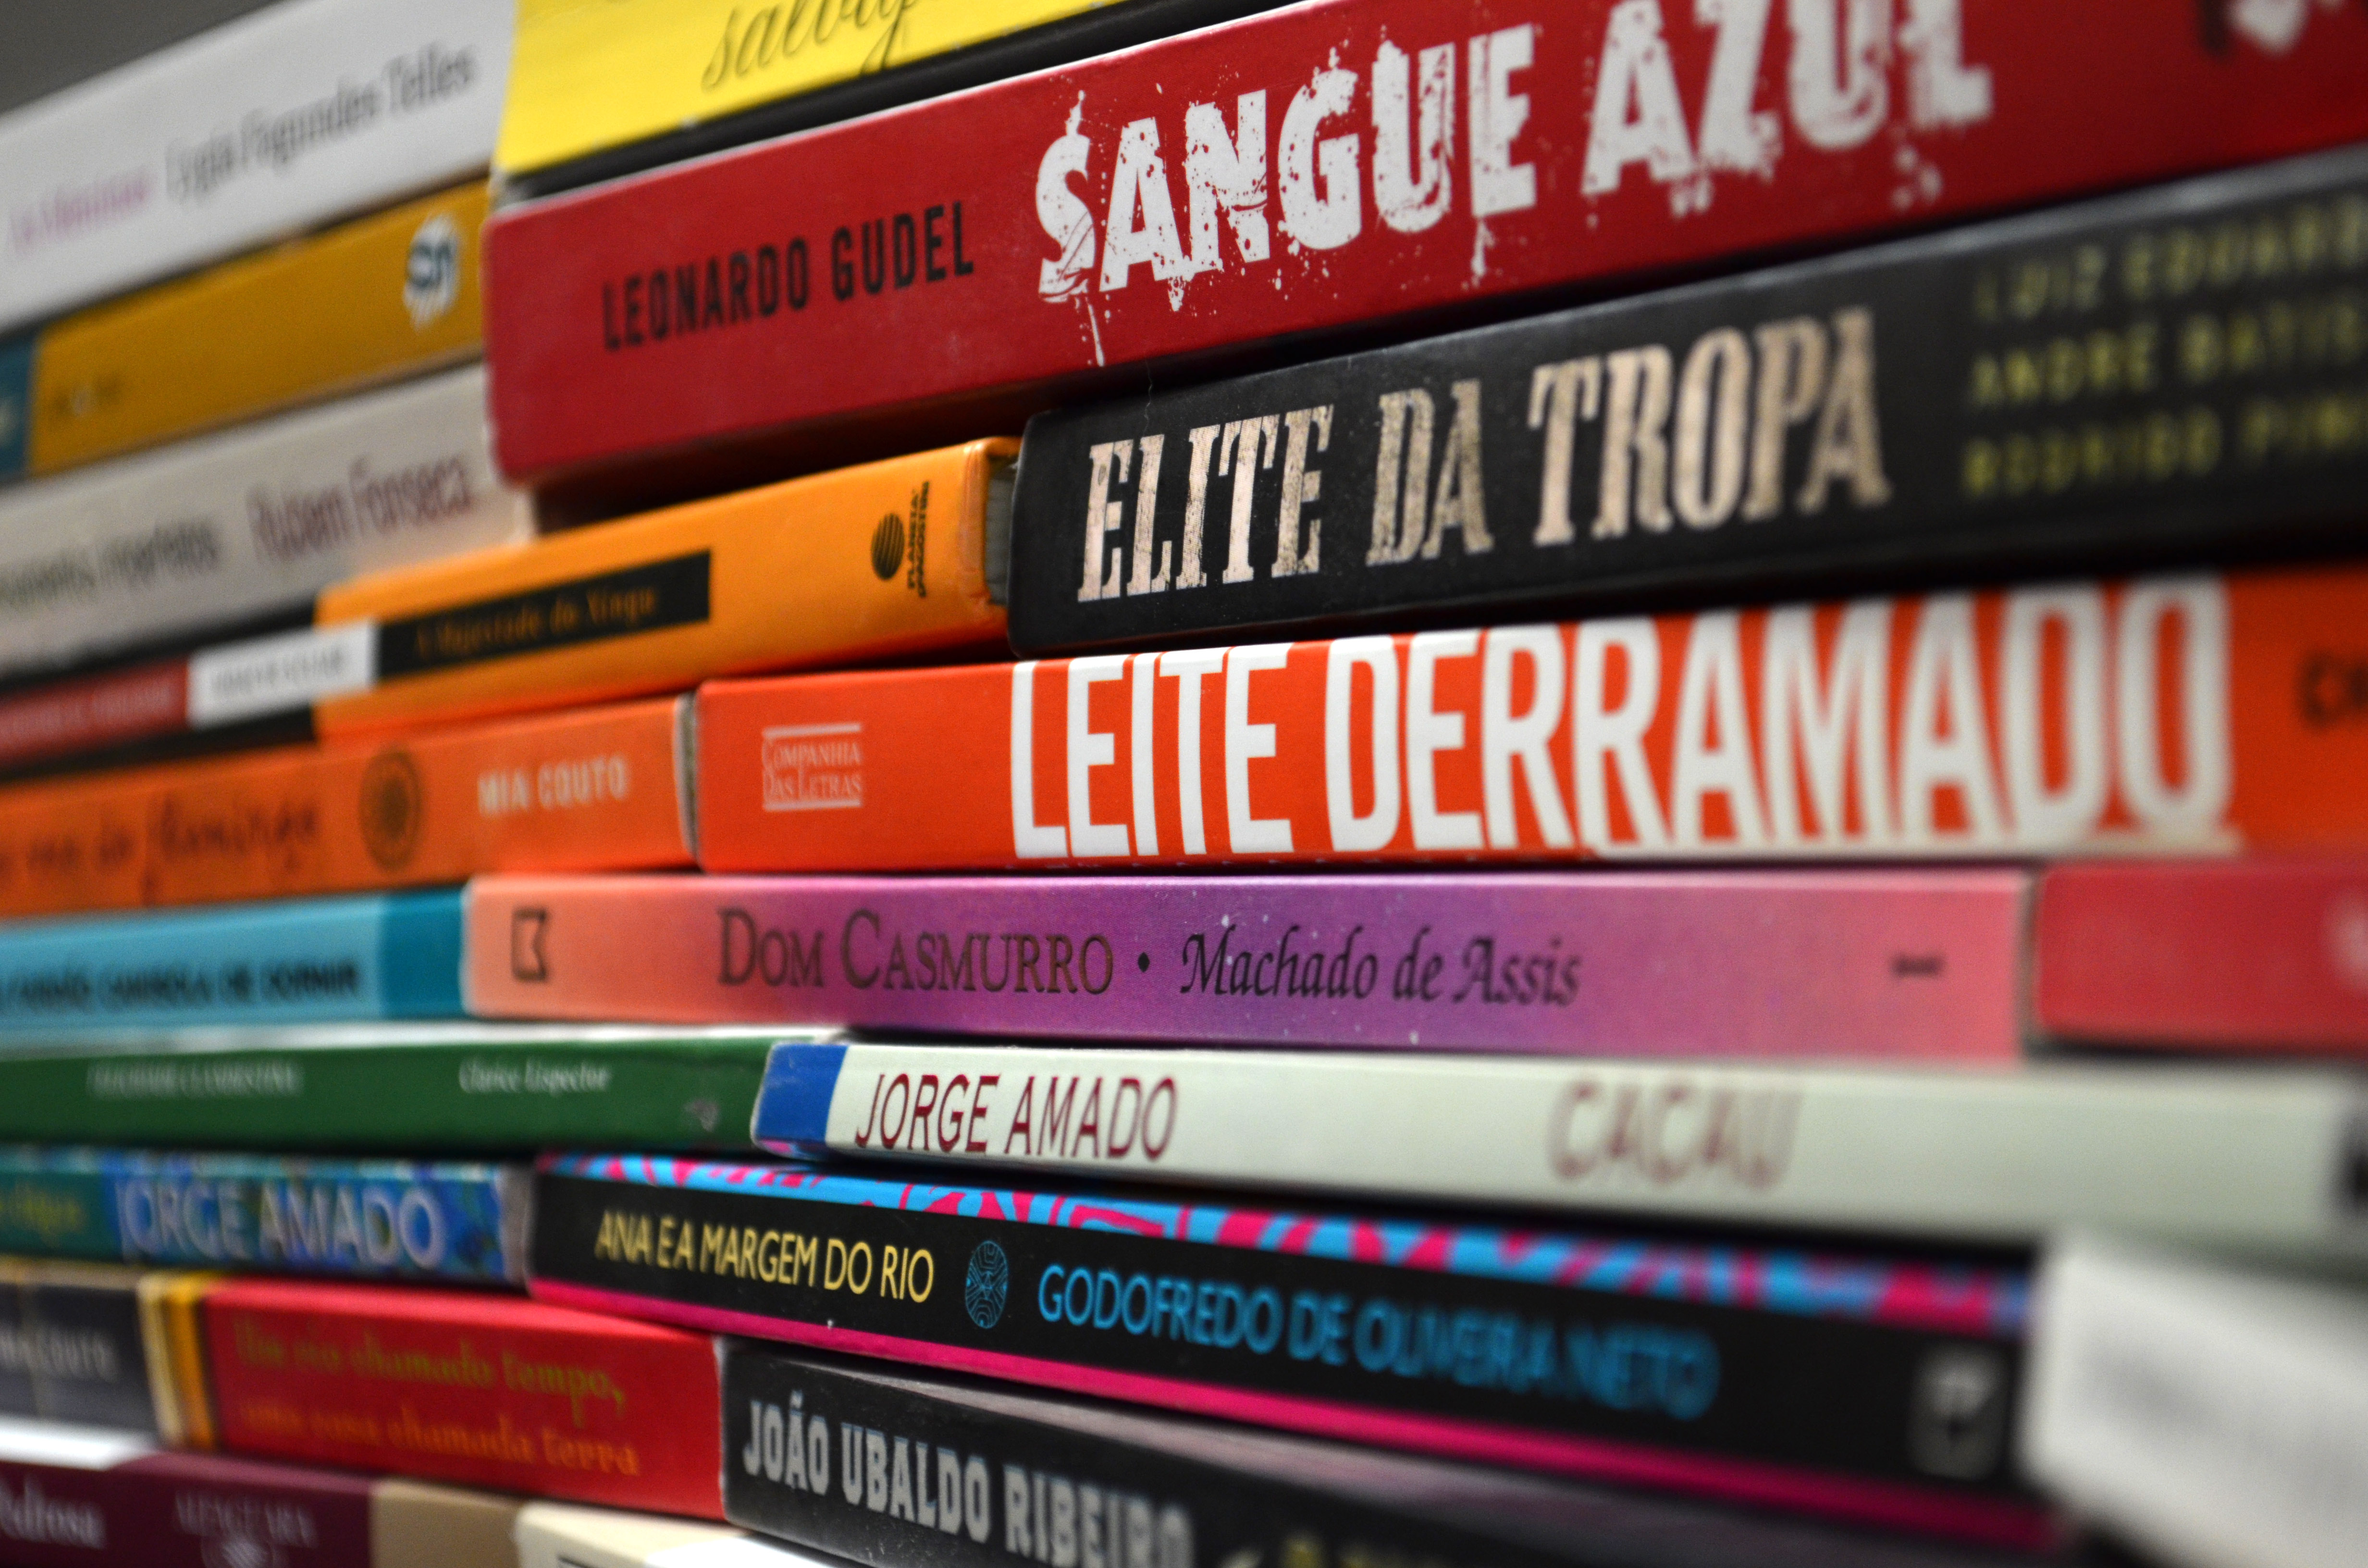 brazilian literature Bem vinda readers, to our monthly discussion of the literature of the world twice a month, we'll post a new country for you to recommend.